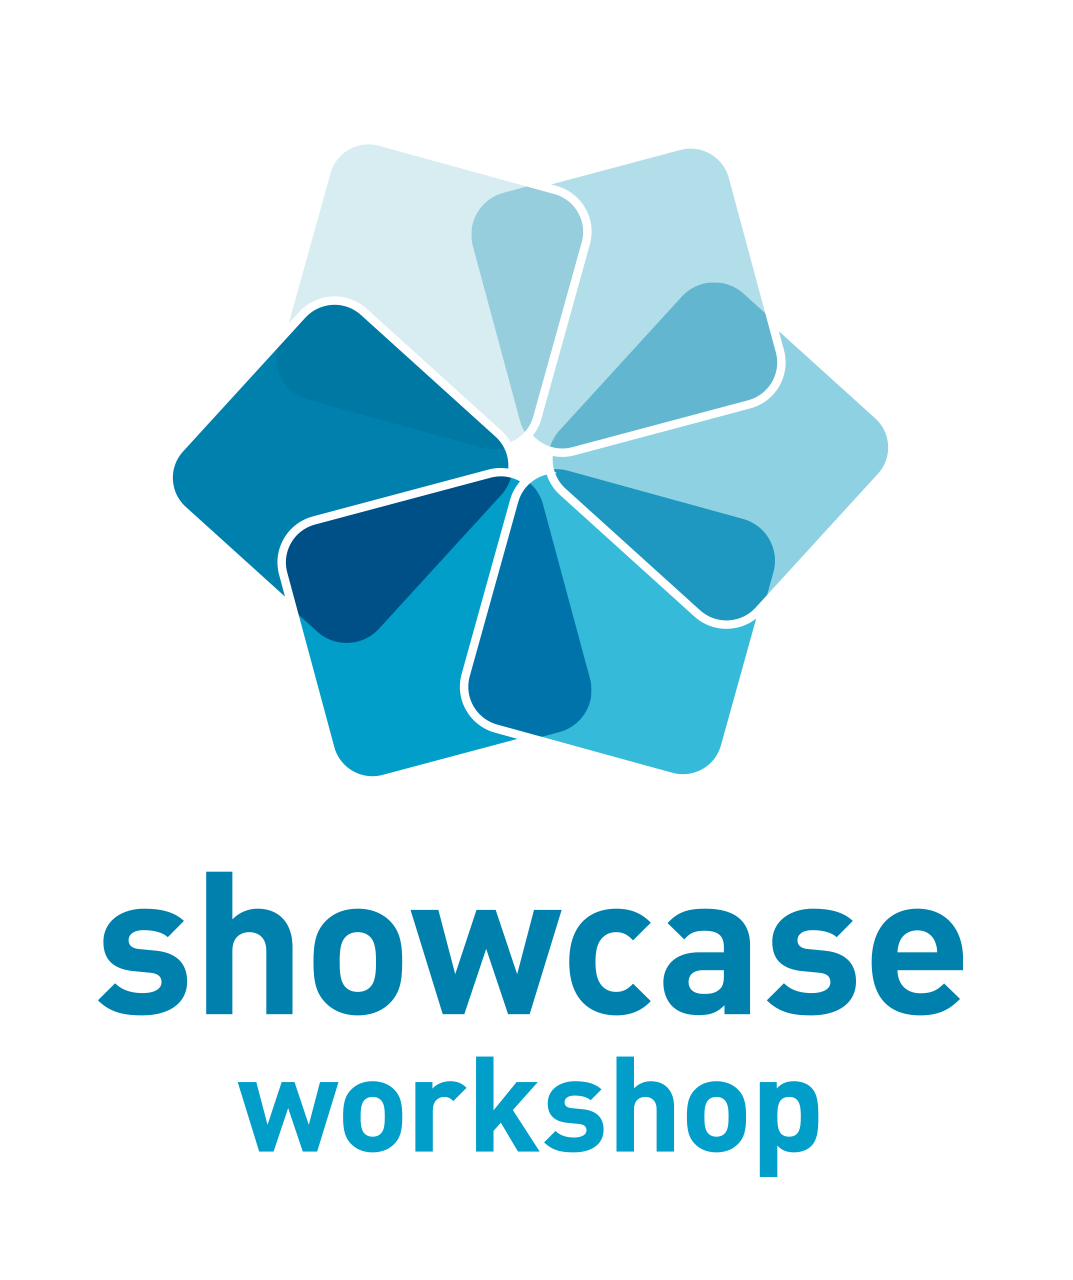 ShowcaseWorkshop_LogoPositive_.png